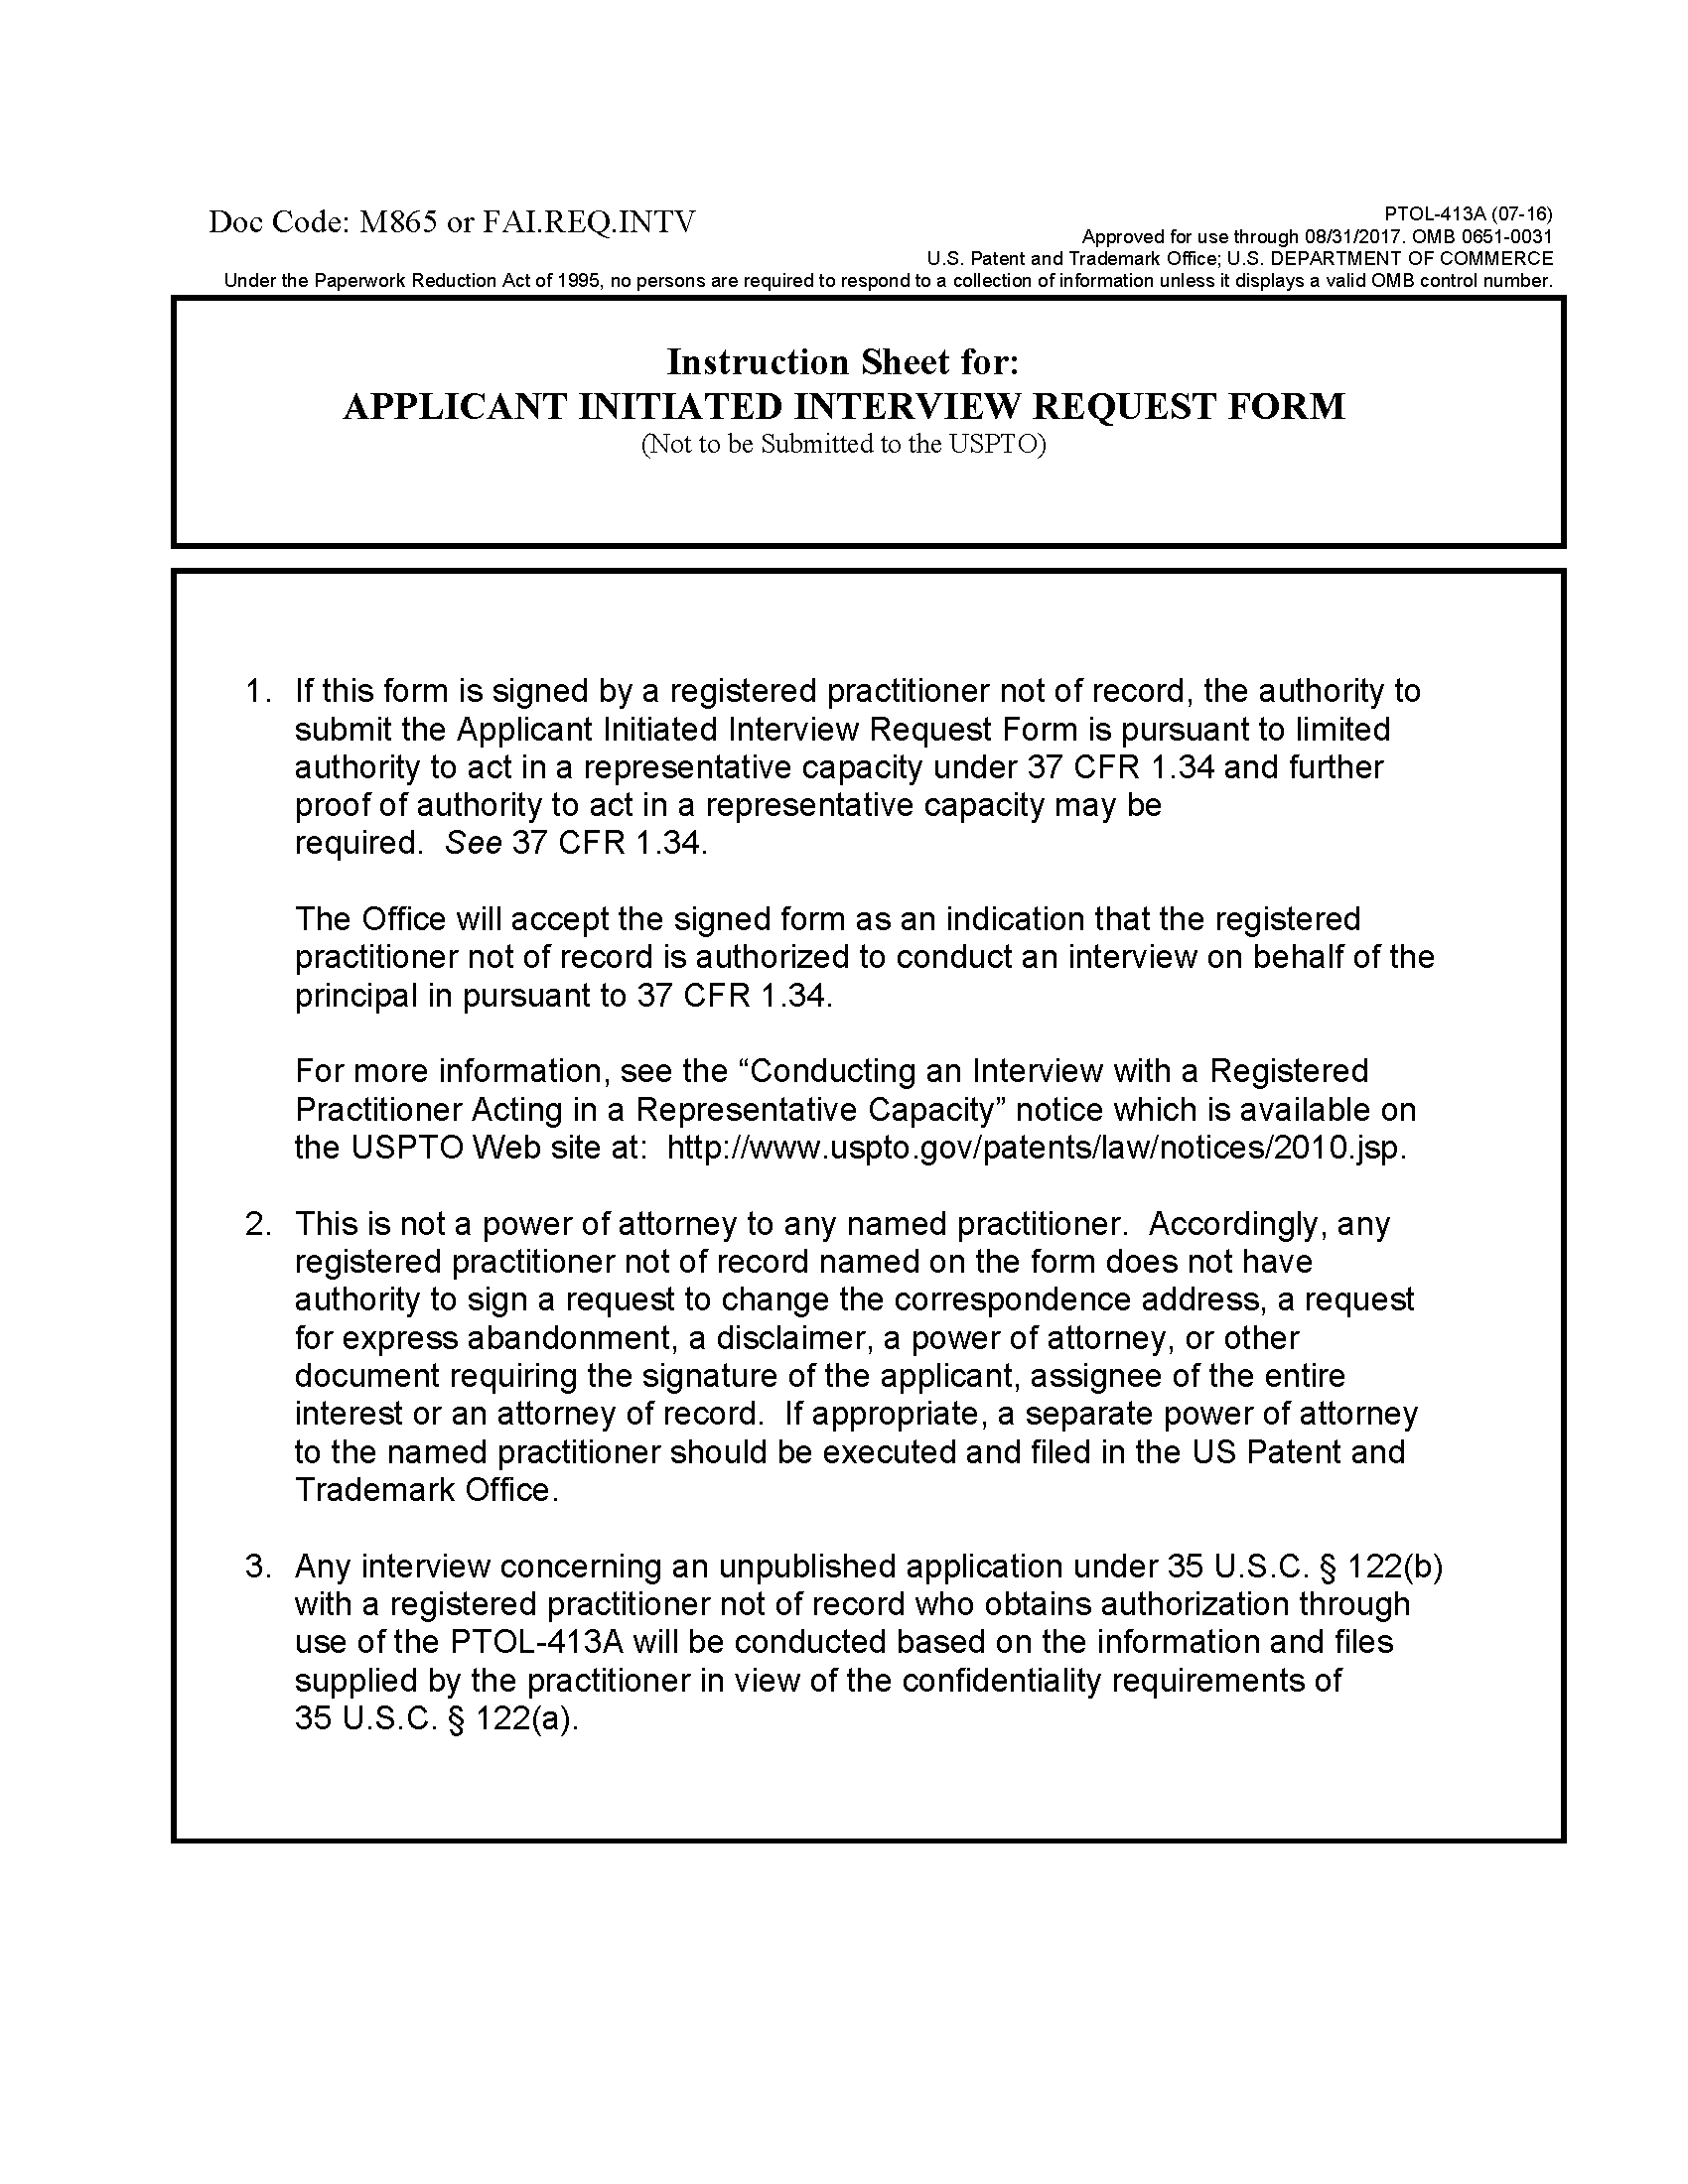 713Interviews – Interview Consent Form